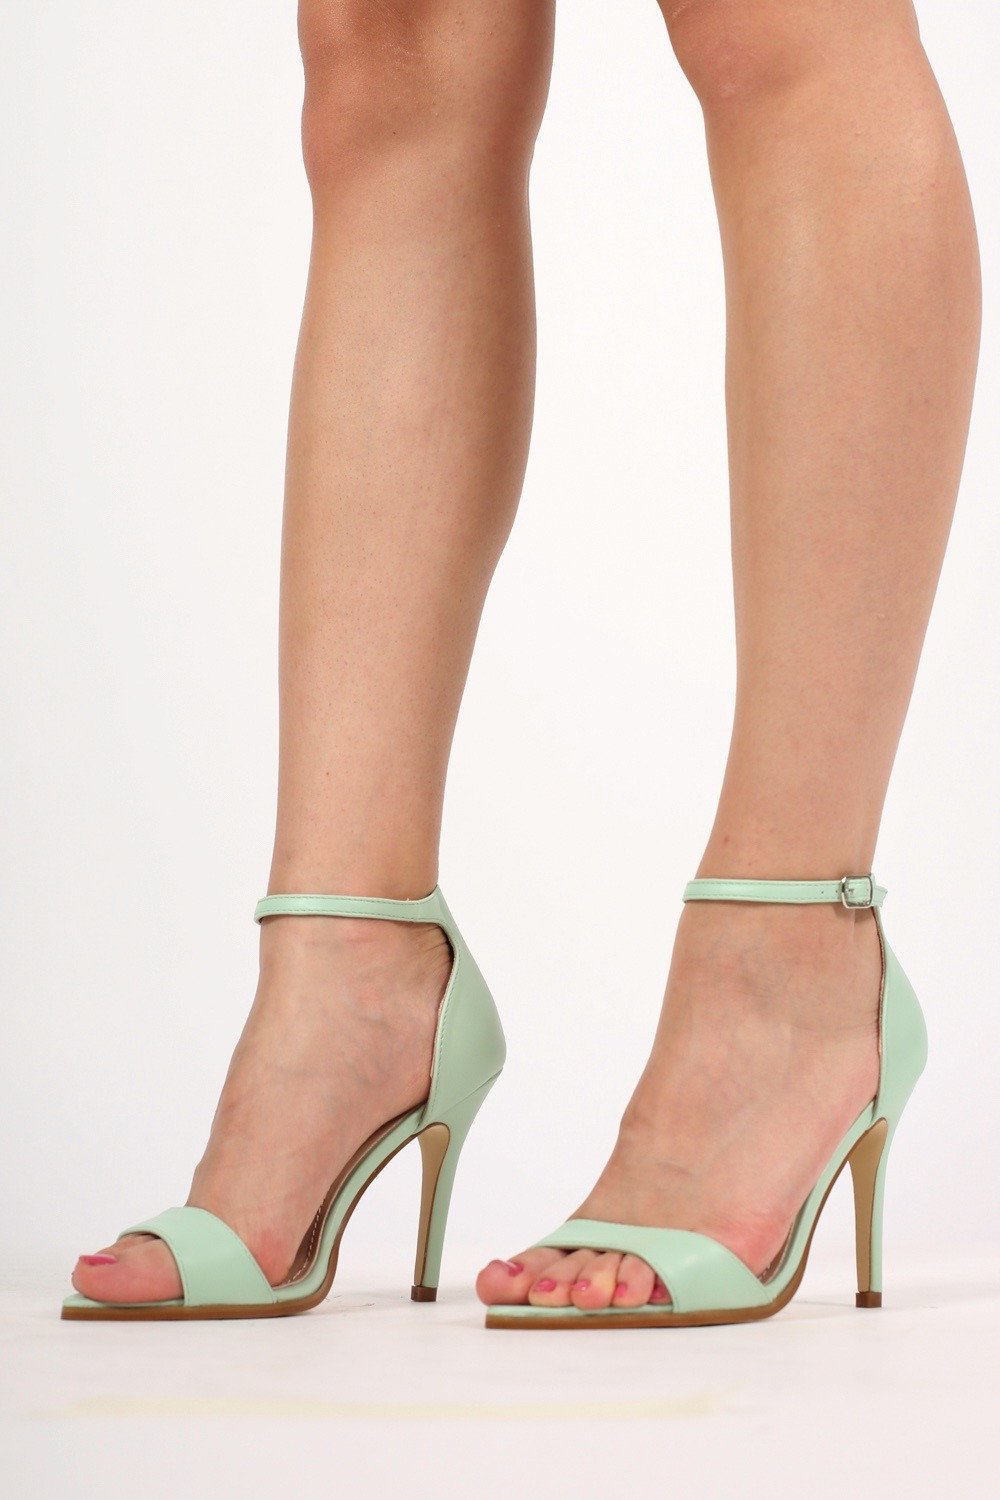 7de1b2015557 Maya Barely There Strappy High Heel Sandals in Mint Green MODEL FRONT